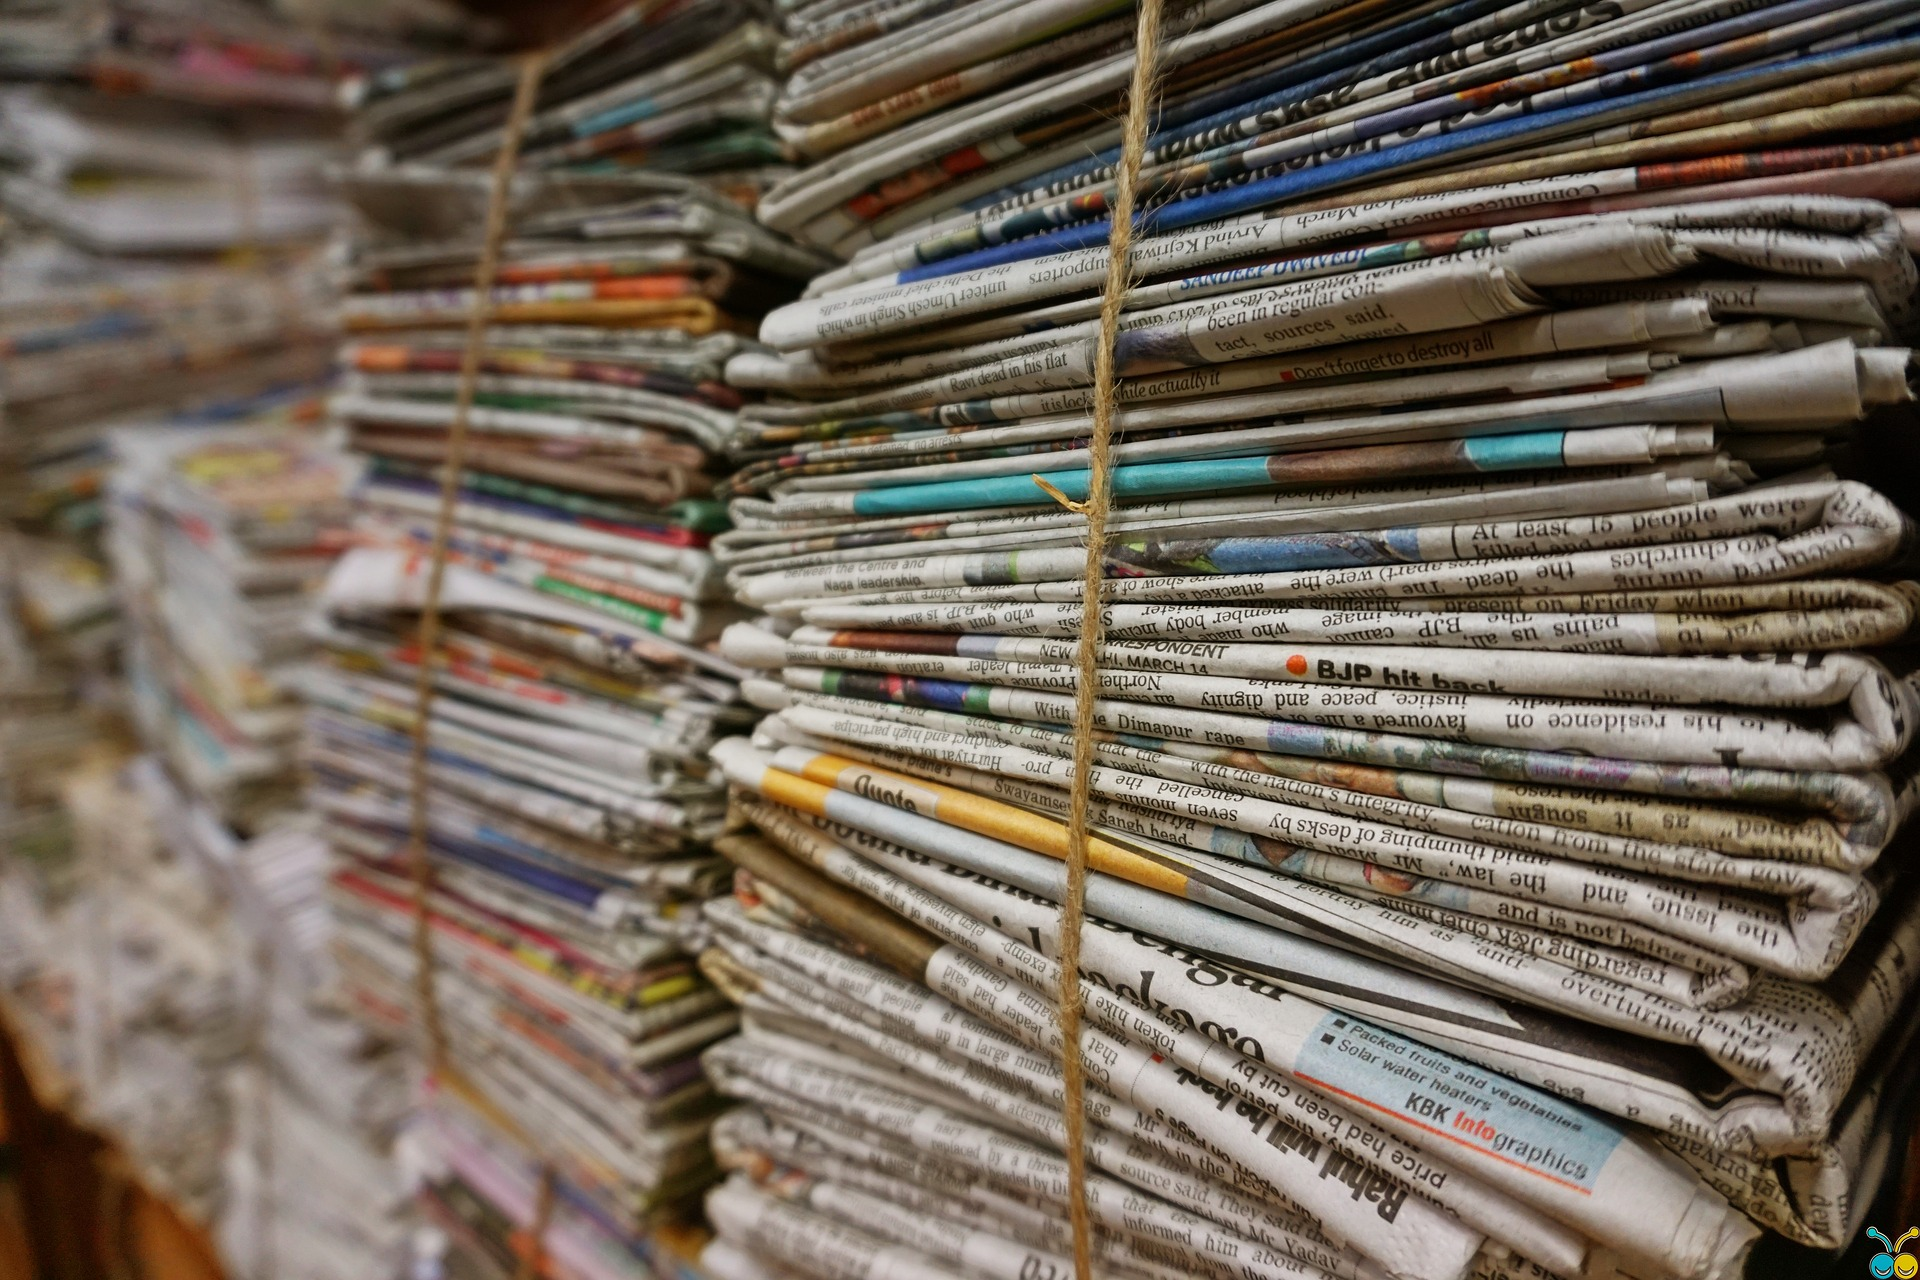 Mind the Gaps: Quantifying the Decline of News Coverage in Canada